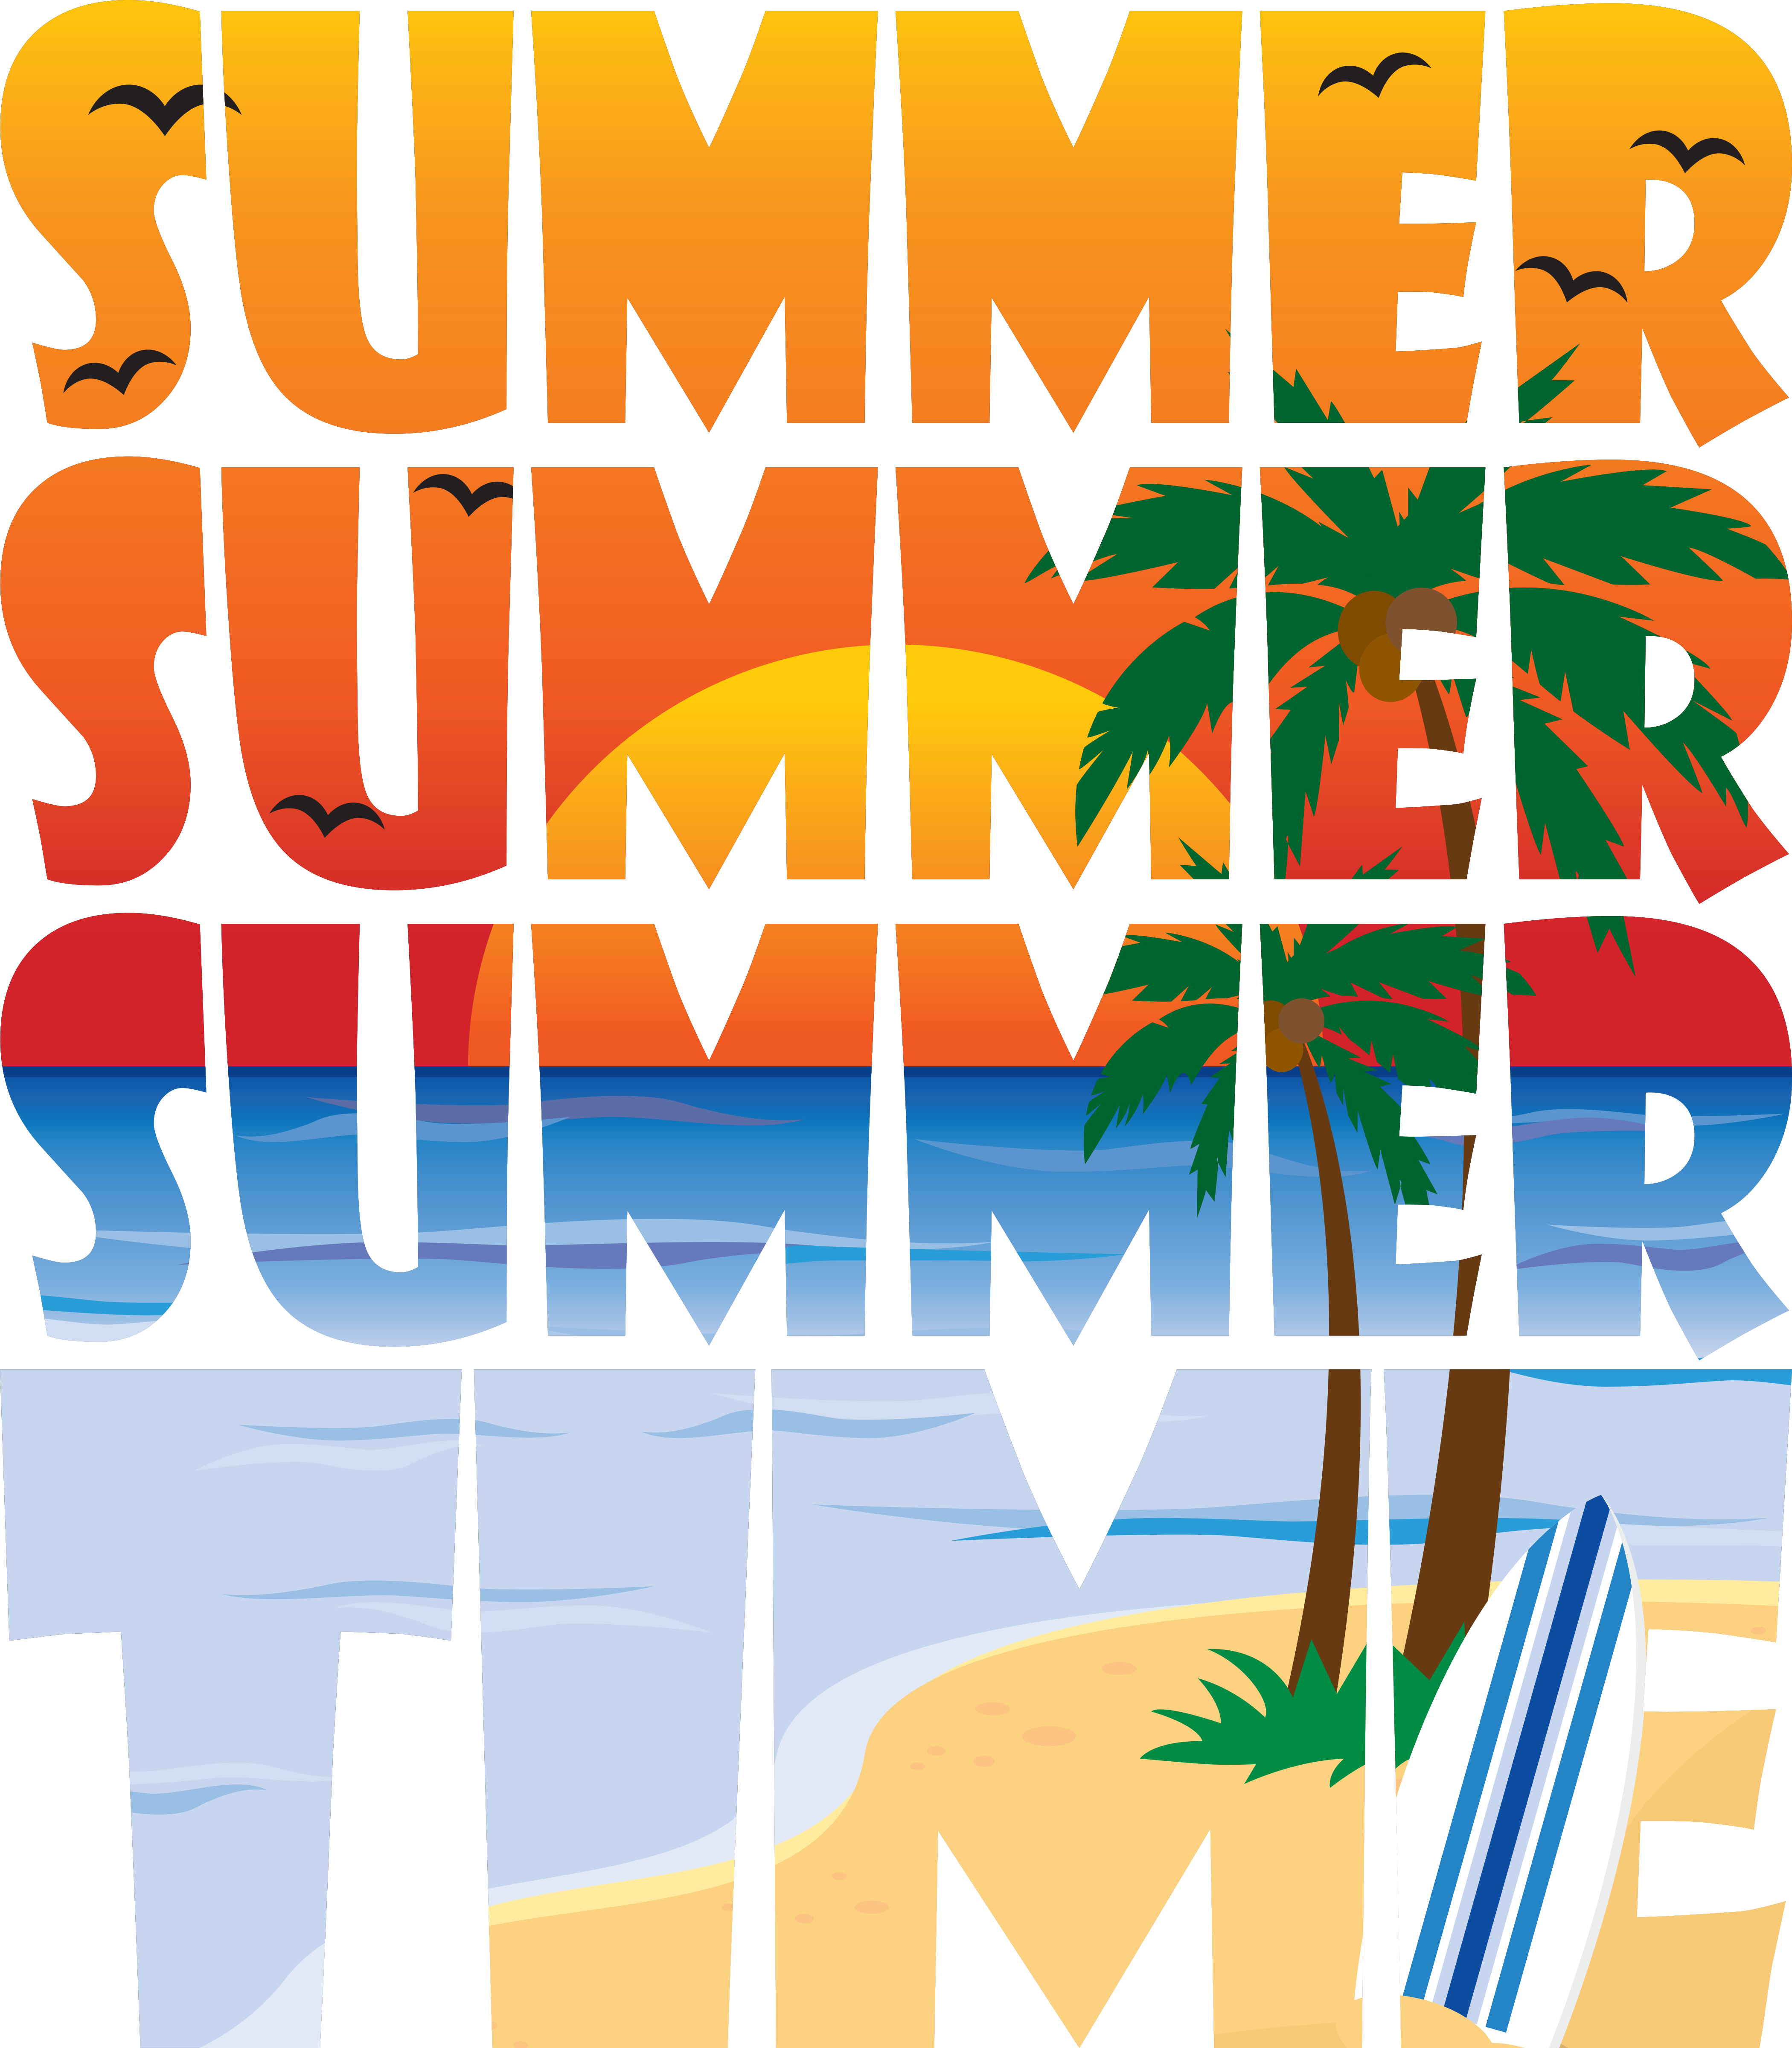 SUMMER SUMMER TIME! design. Illustrated graphic design of a.